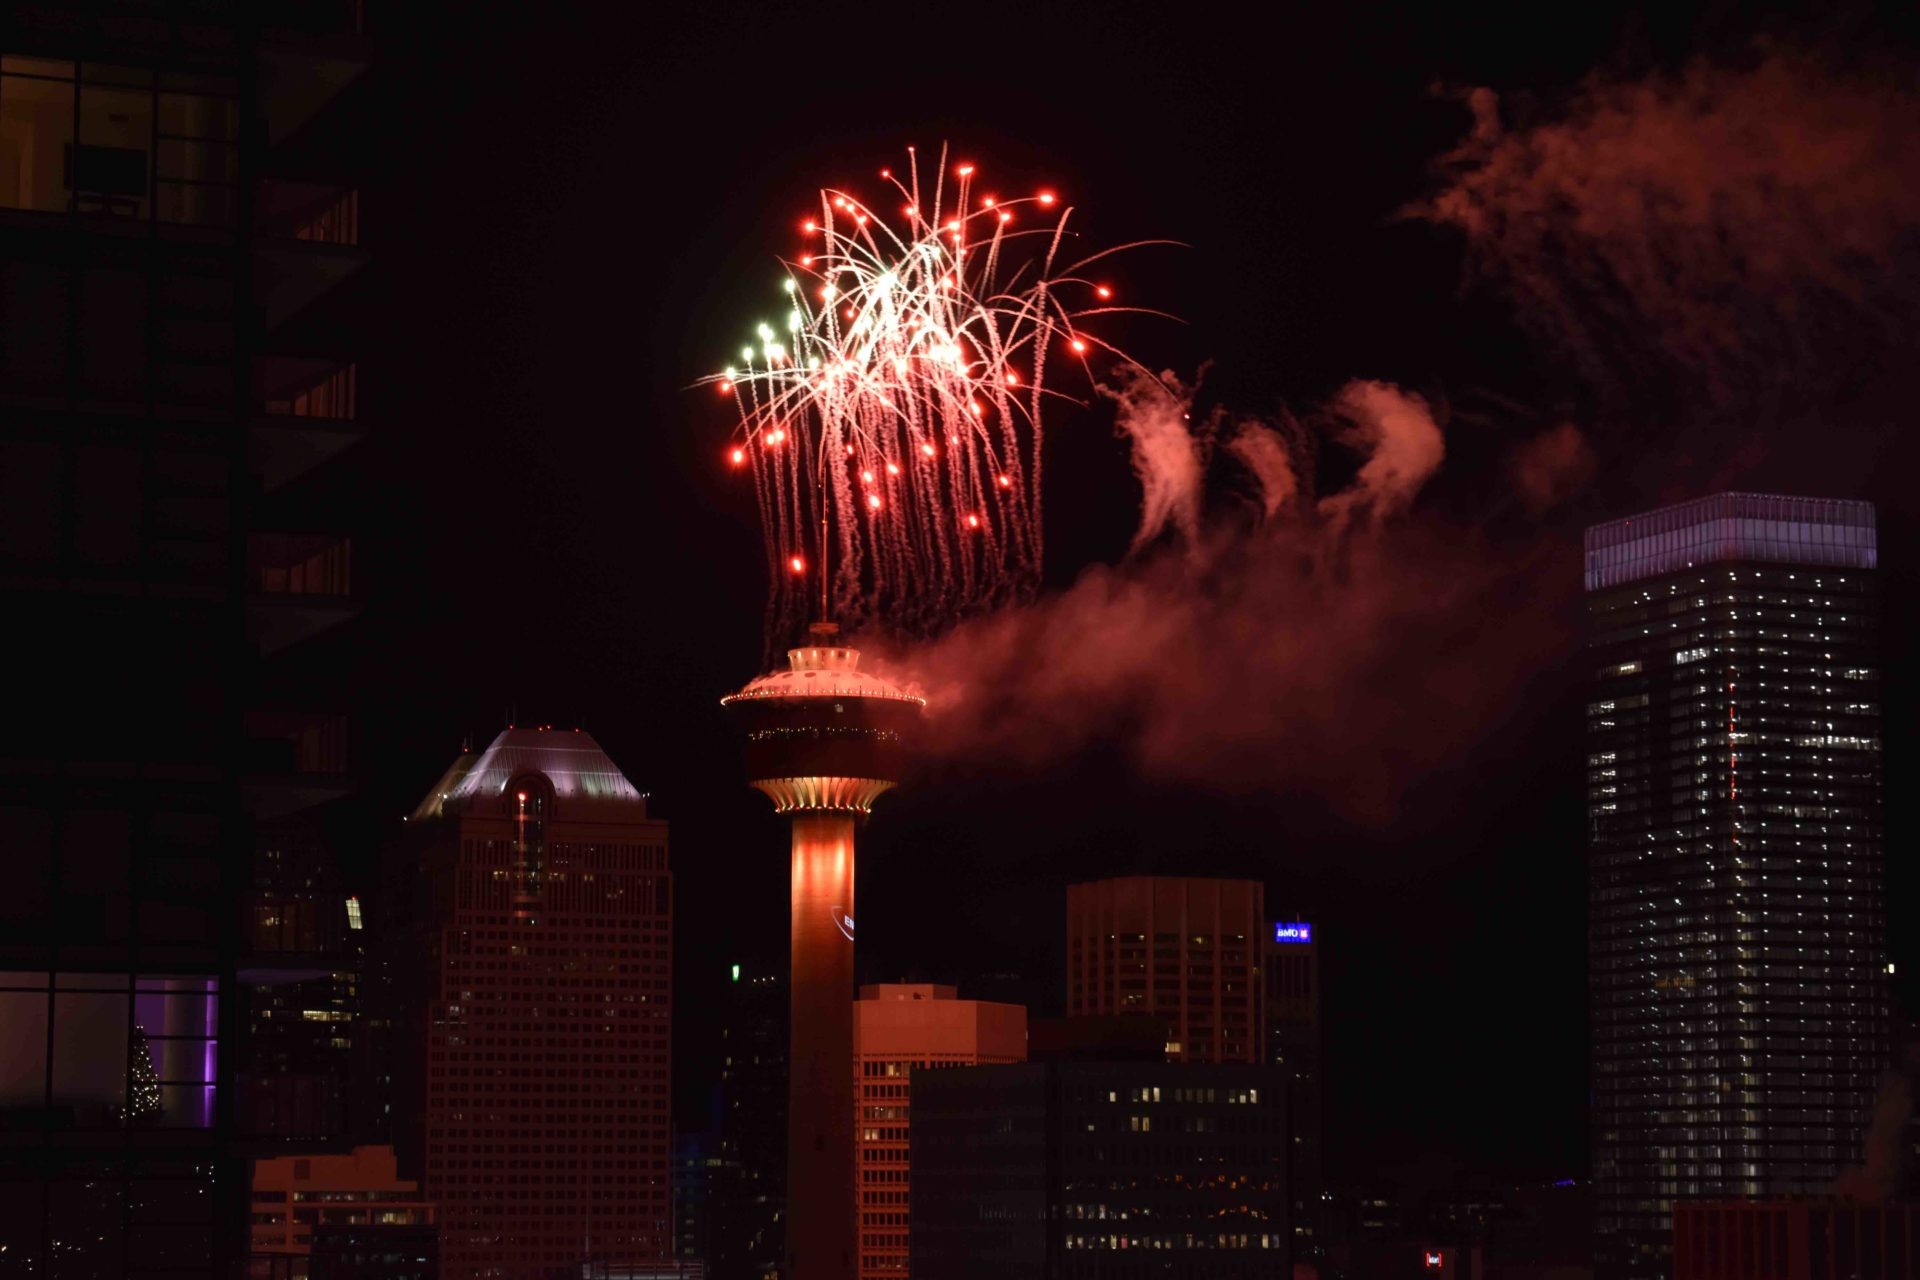 www.iamcalgary.ca I am Calgary Tower New Years 2019